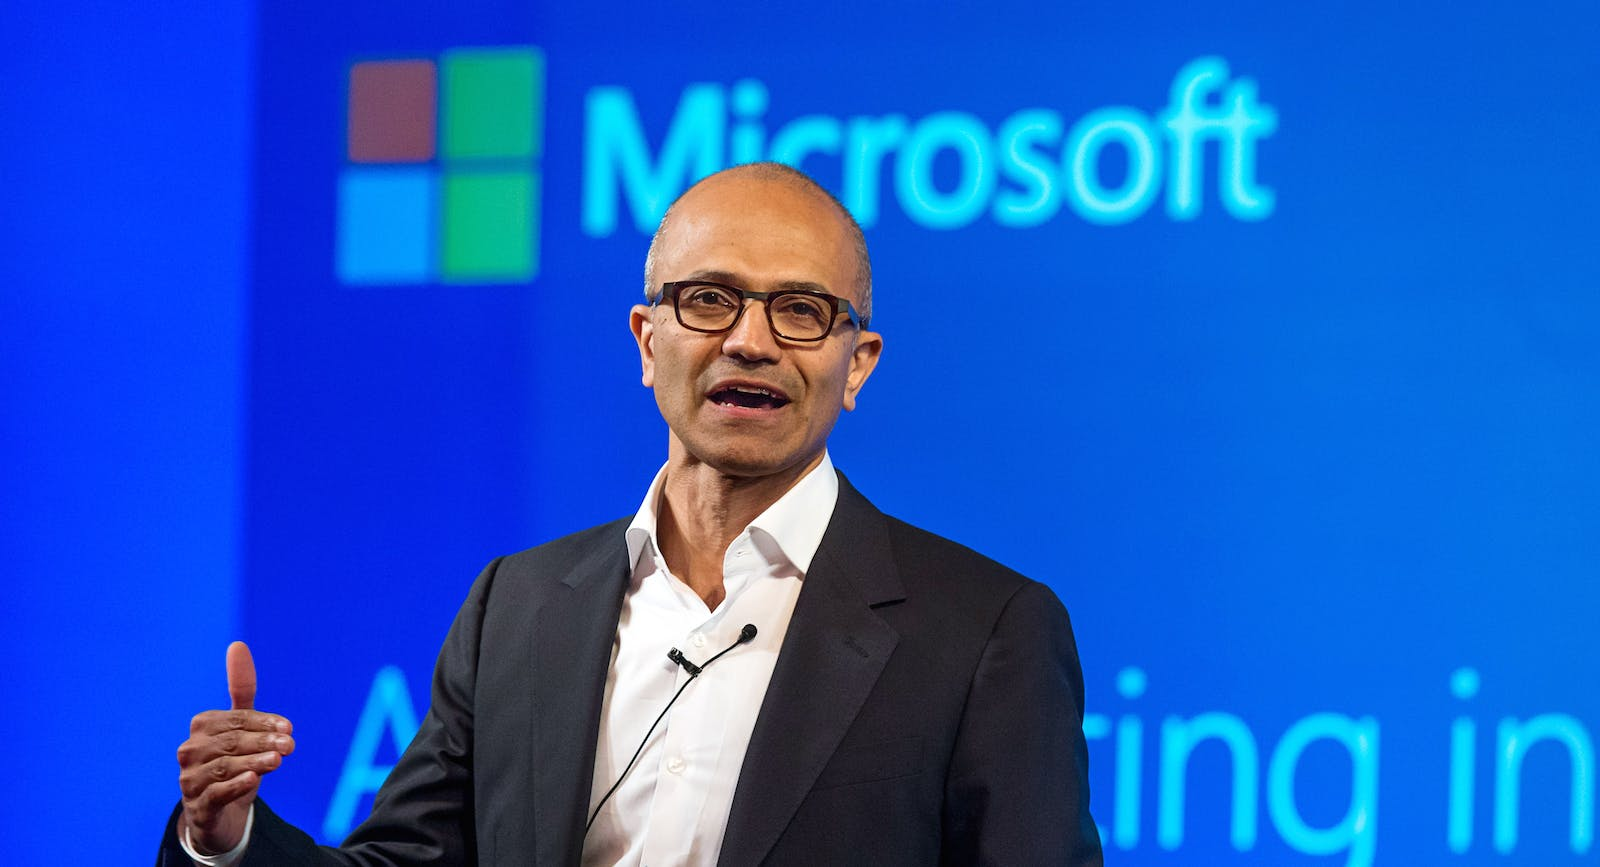 Microsoft CEO Satya Nadella discussing Azure last month. Photo by Bloomberg.